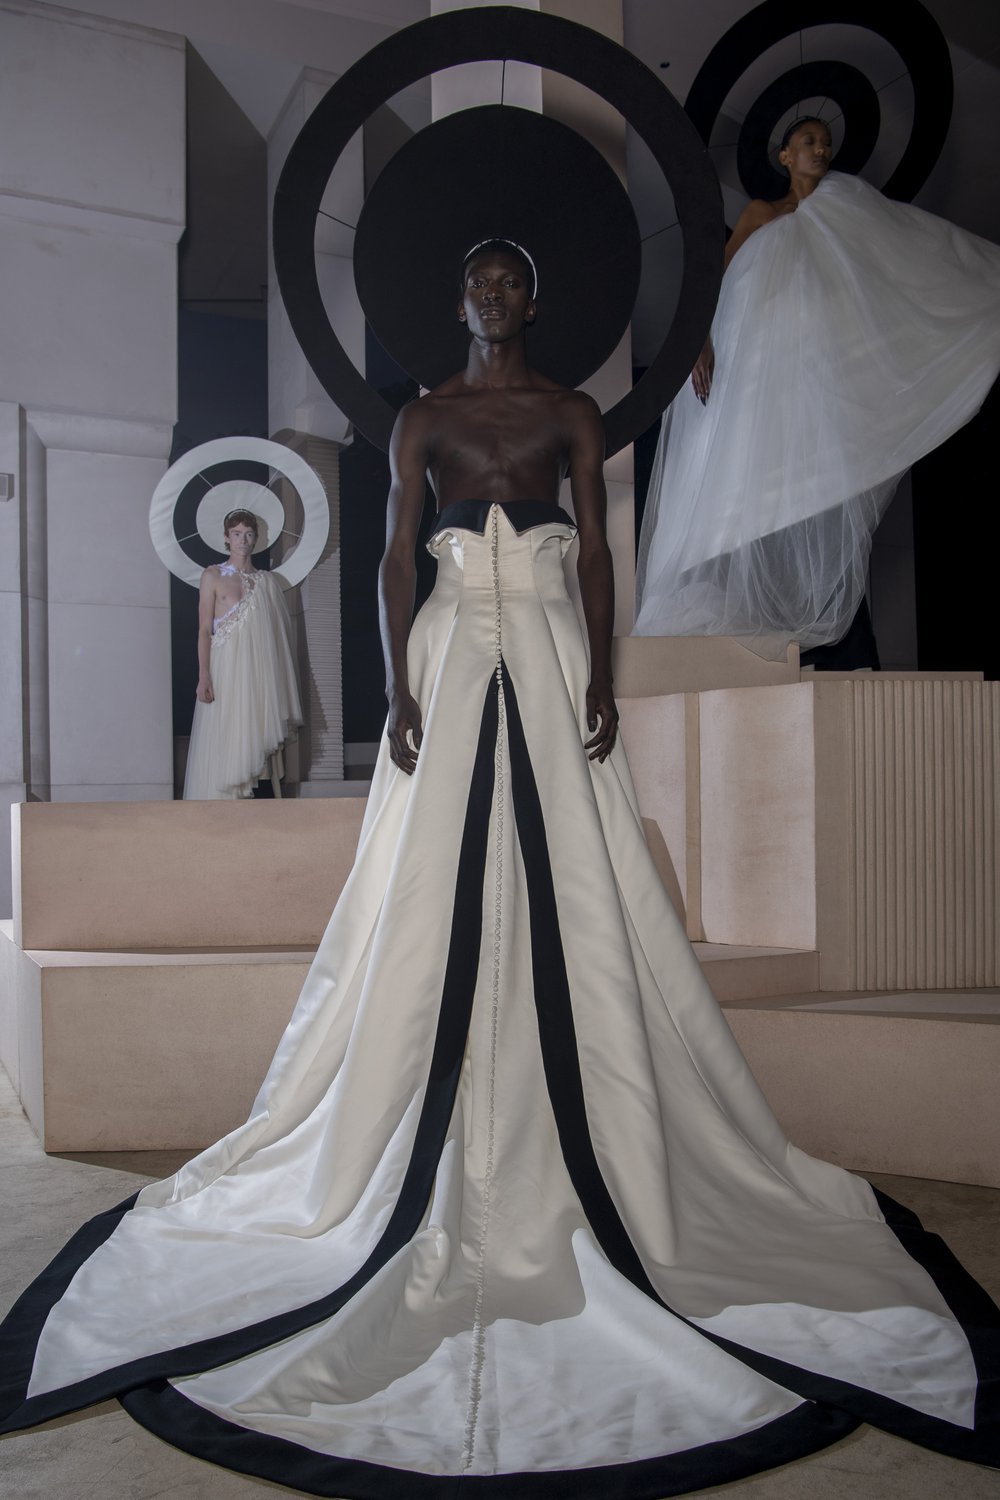 A model wears a demi-couture satin bridal gown made from Oxfam pre-loved bridal wear and suits with black edging and a black halo. The dress echoes Chanel